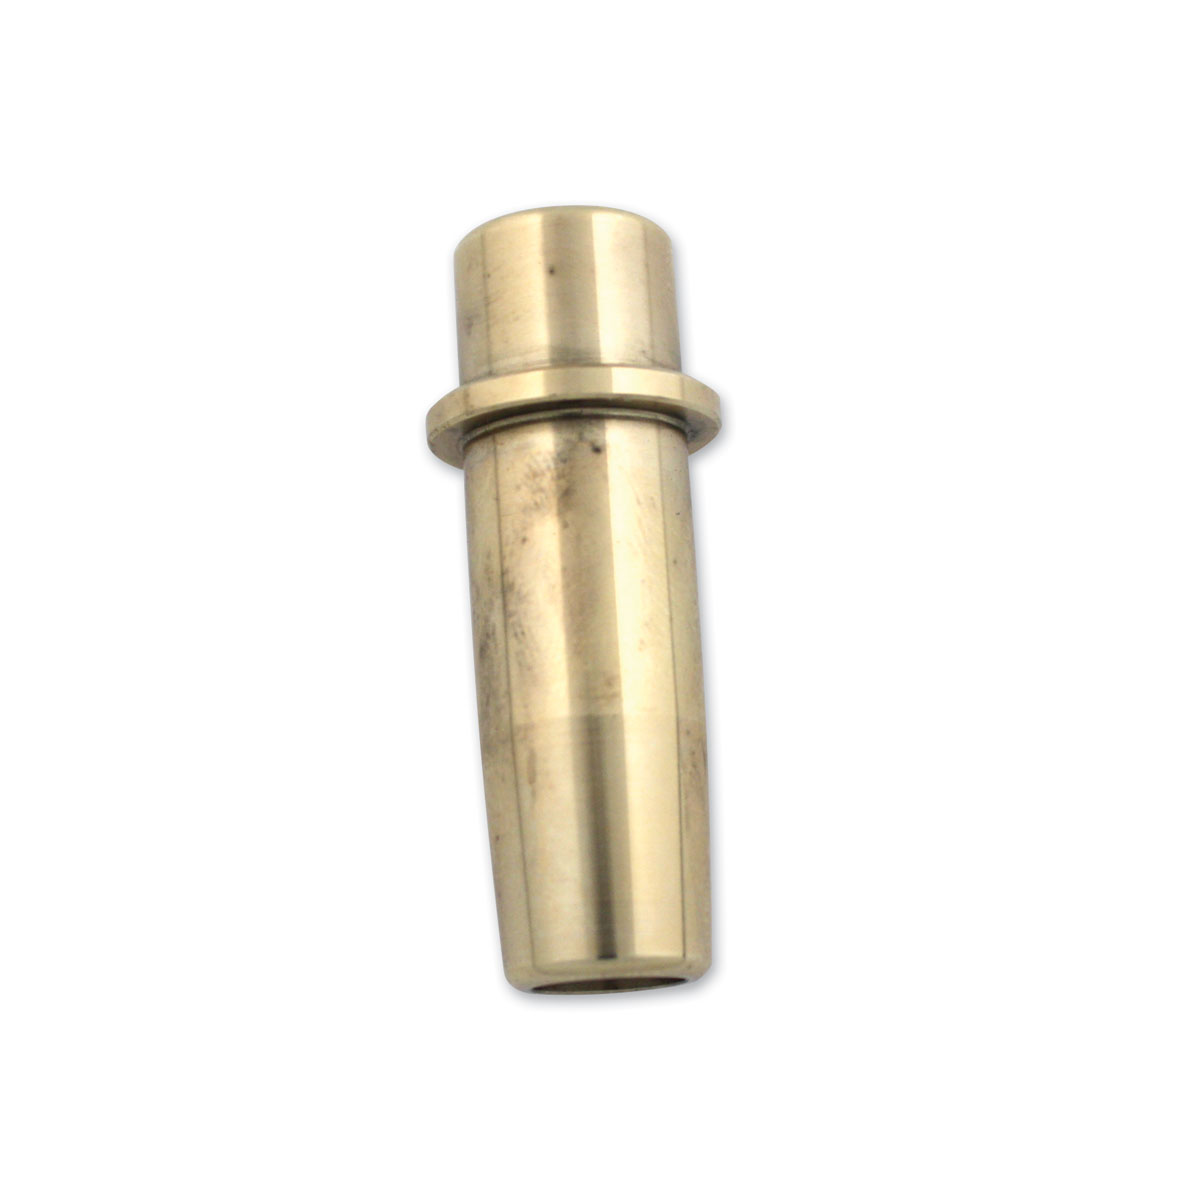 V-Twin Manufacturing Ampco 45 .001 Intake/Exhaust Valve Guide